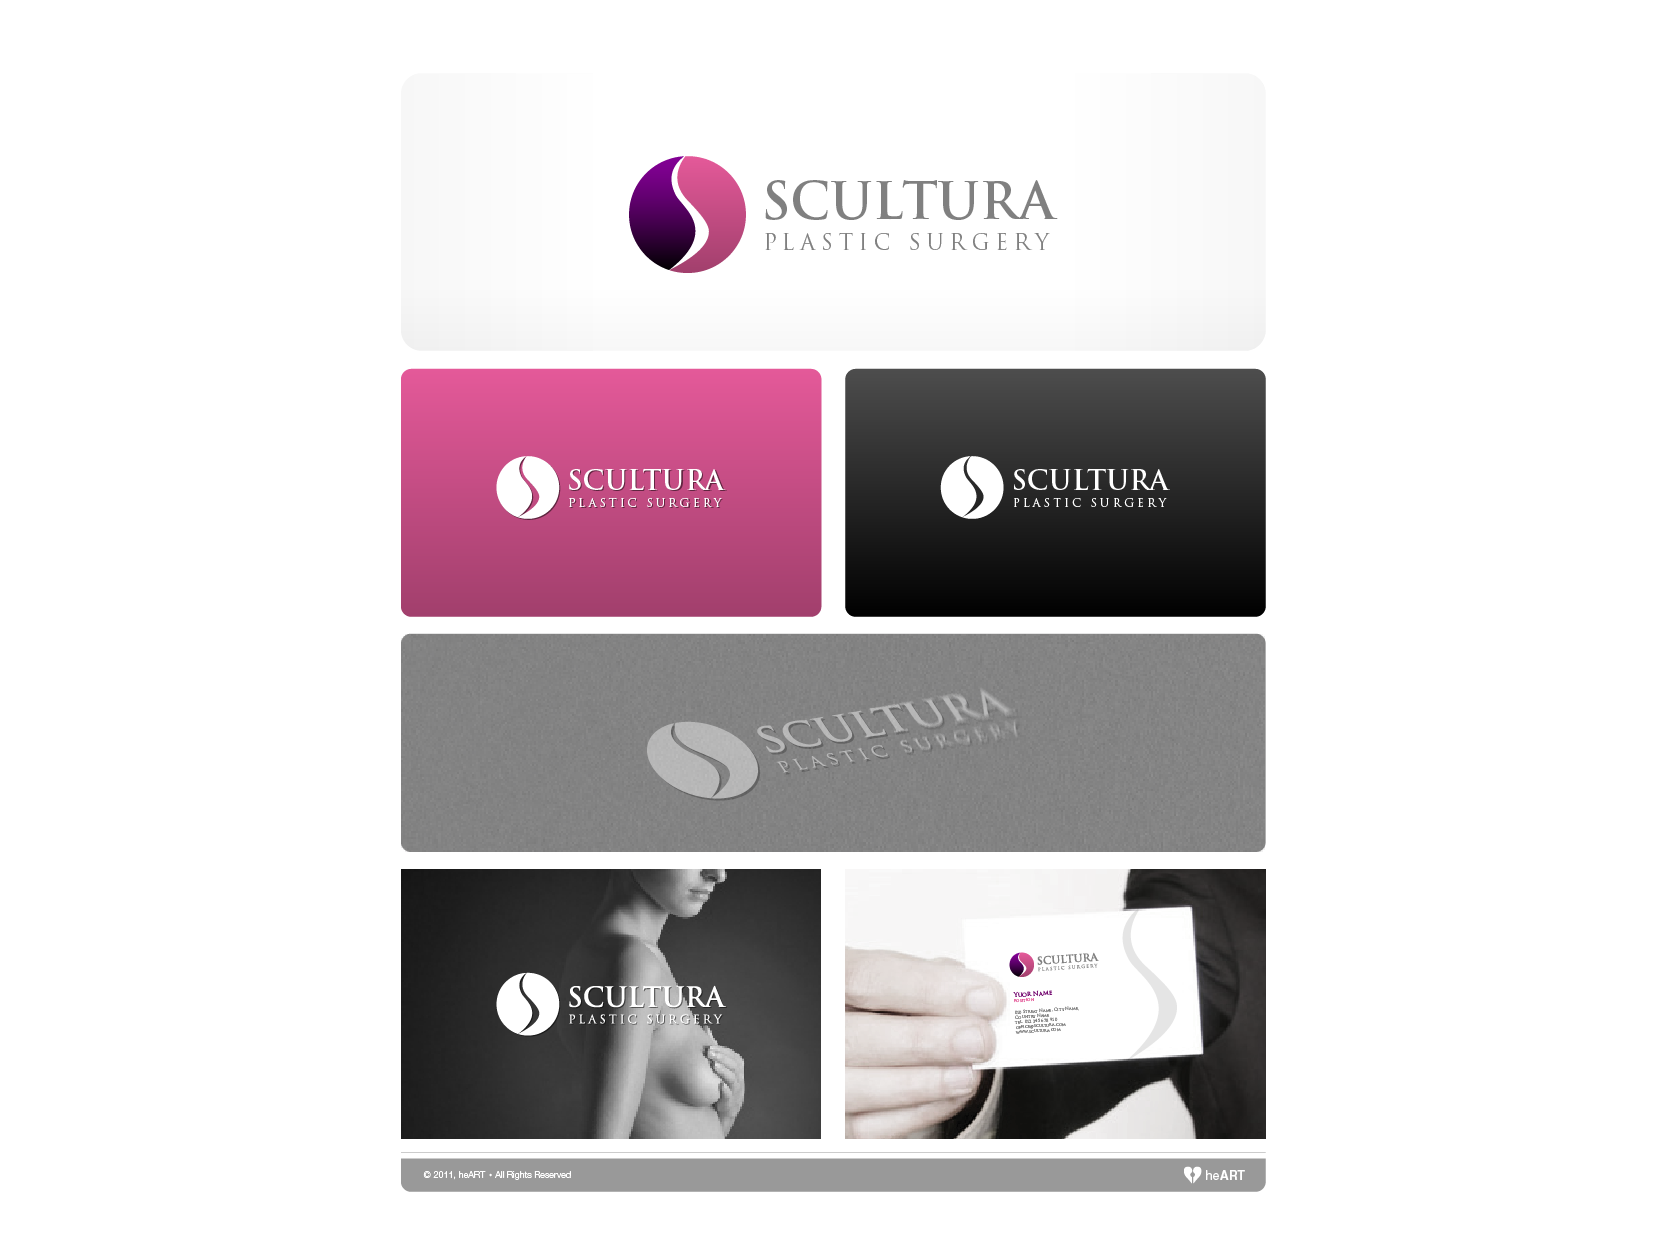 Help Scultura Plastic Surgery with a new logo